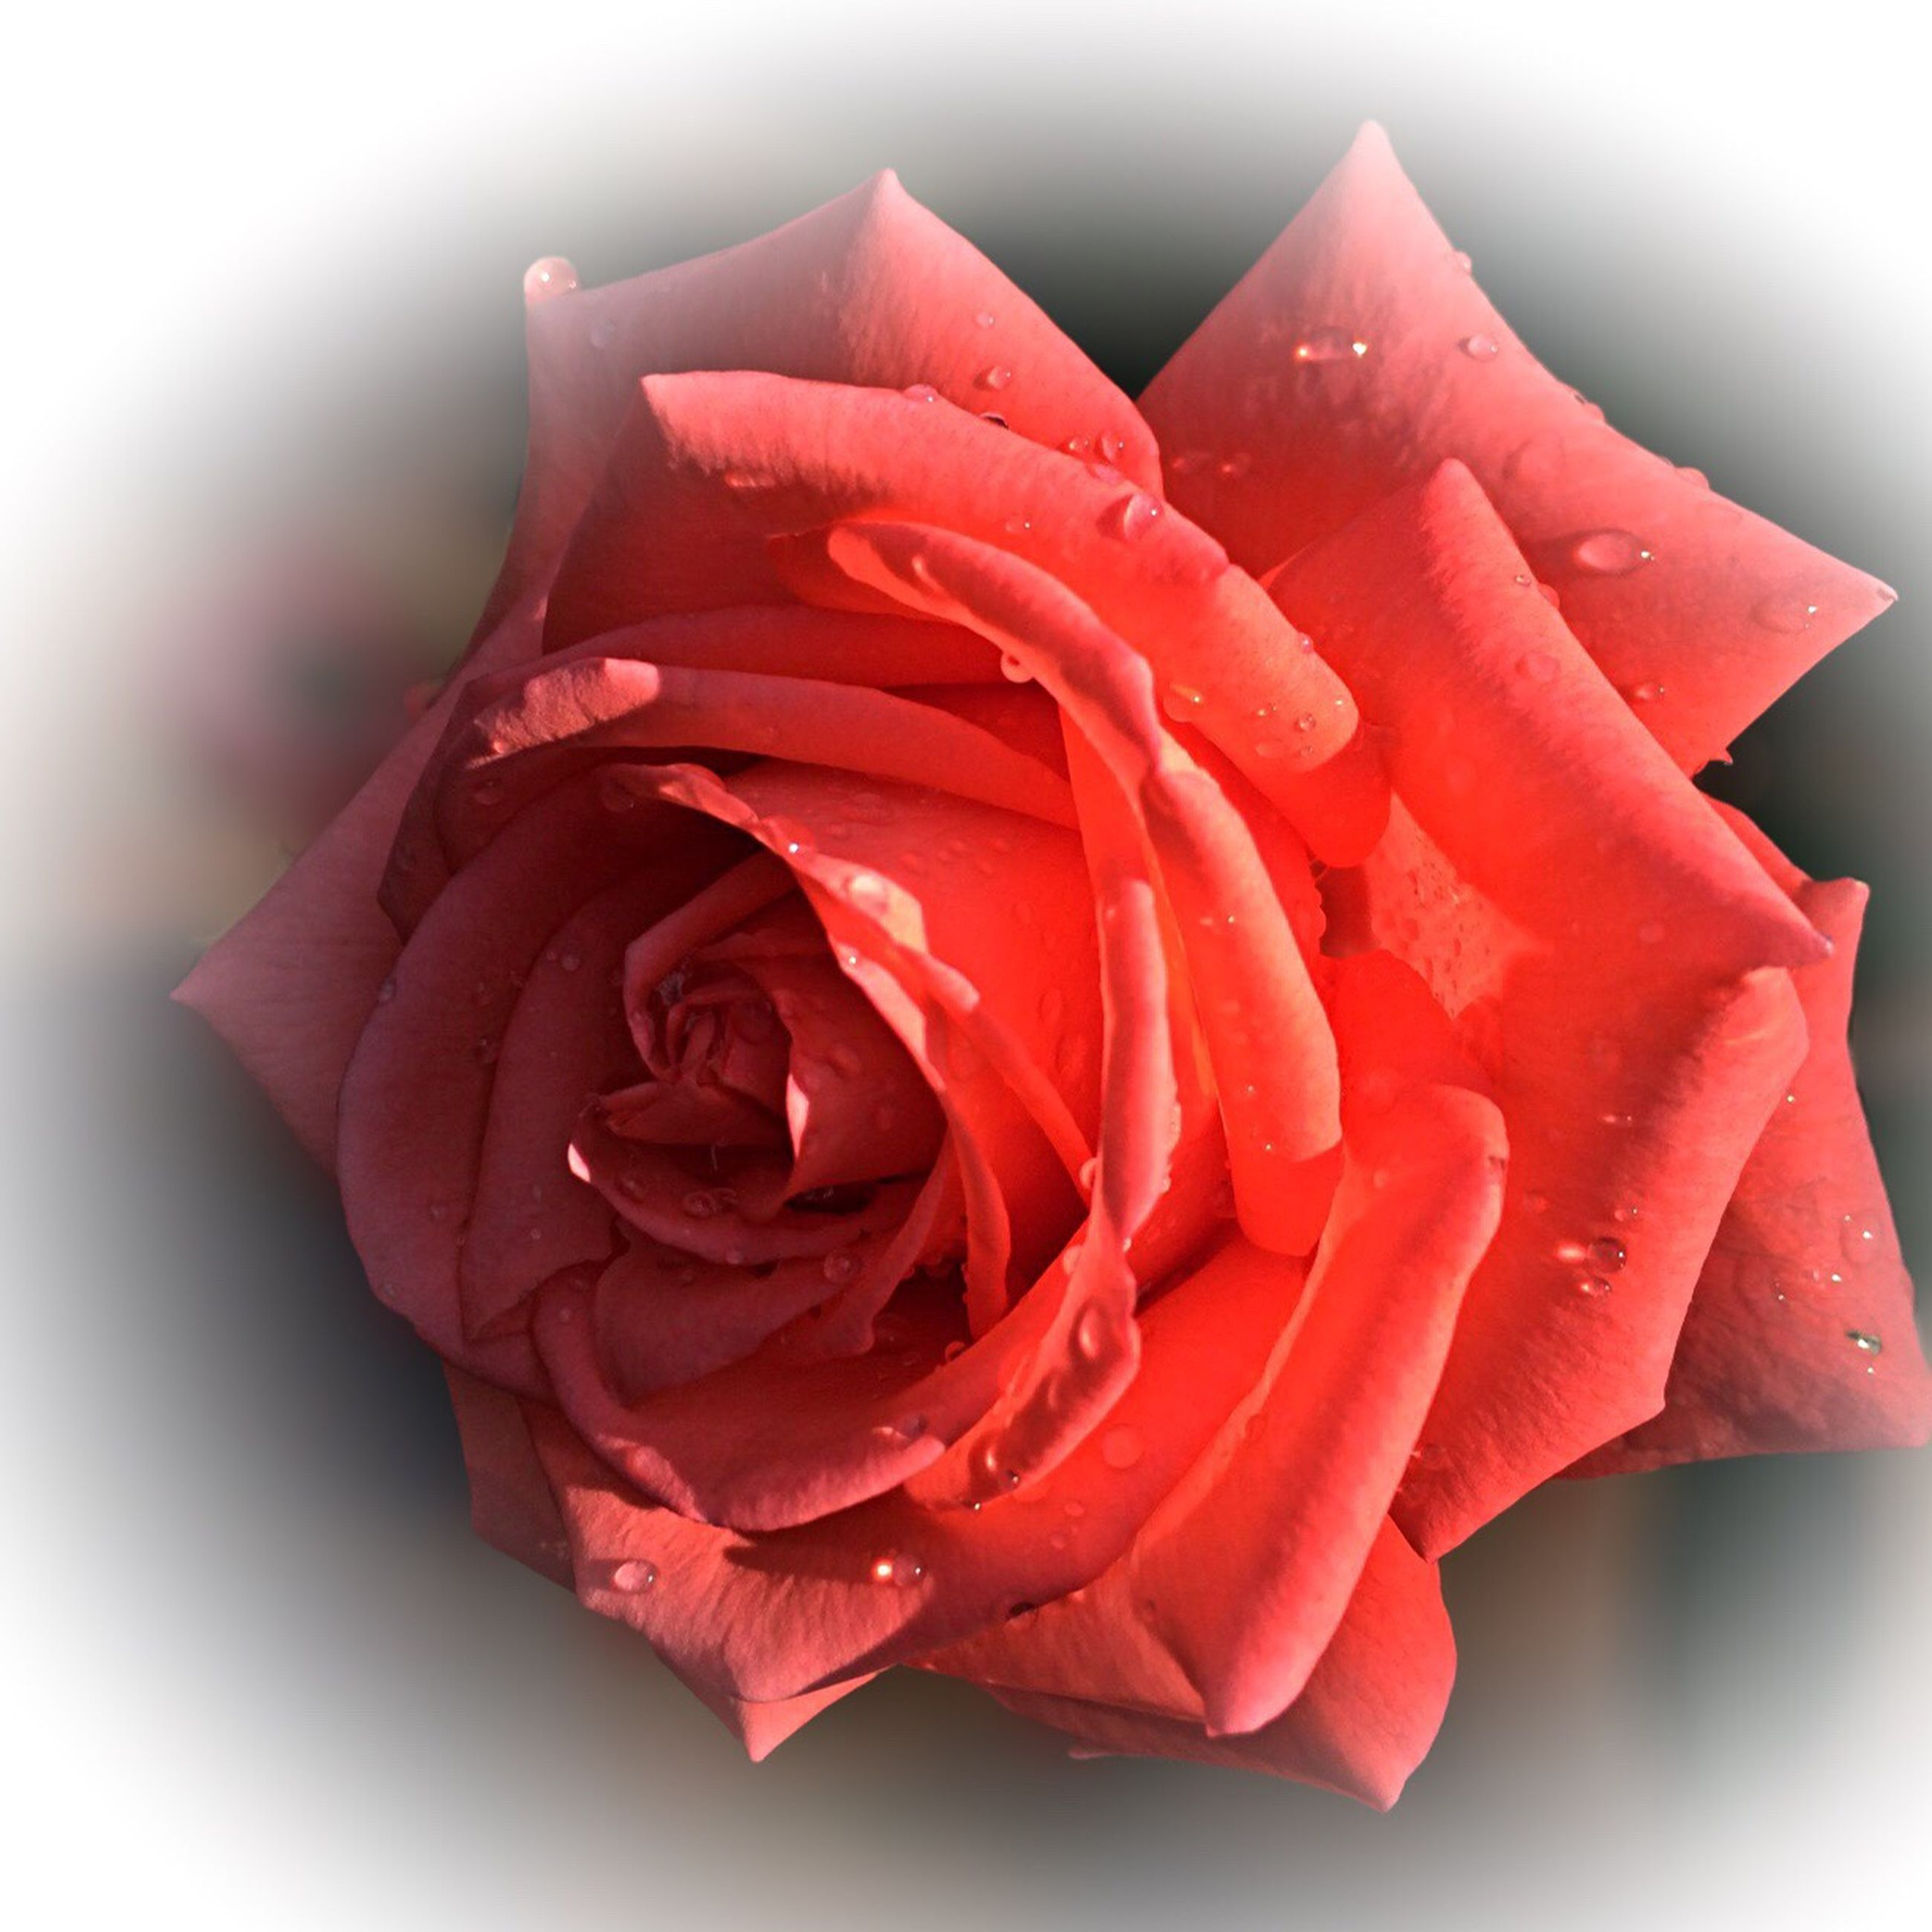 red, petal, flower, rose - flower, freshness, studio shot, flower head, close-up, fragility, single flower, rose, white background, drop, beauty in nature, single rose, wet, water, nature, no people, selective focus